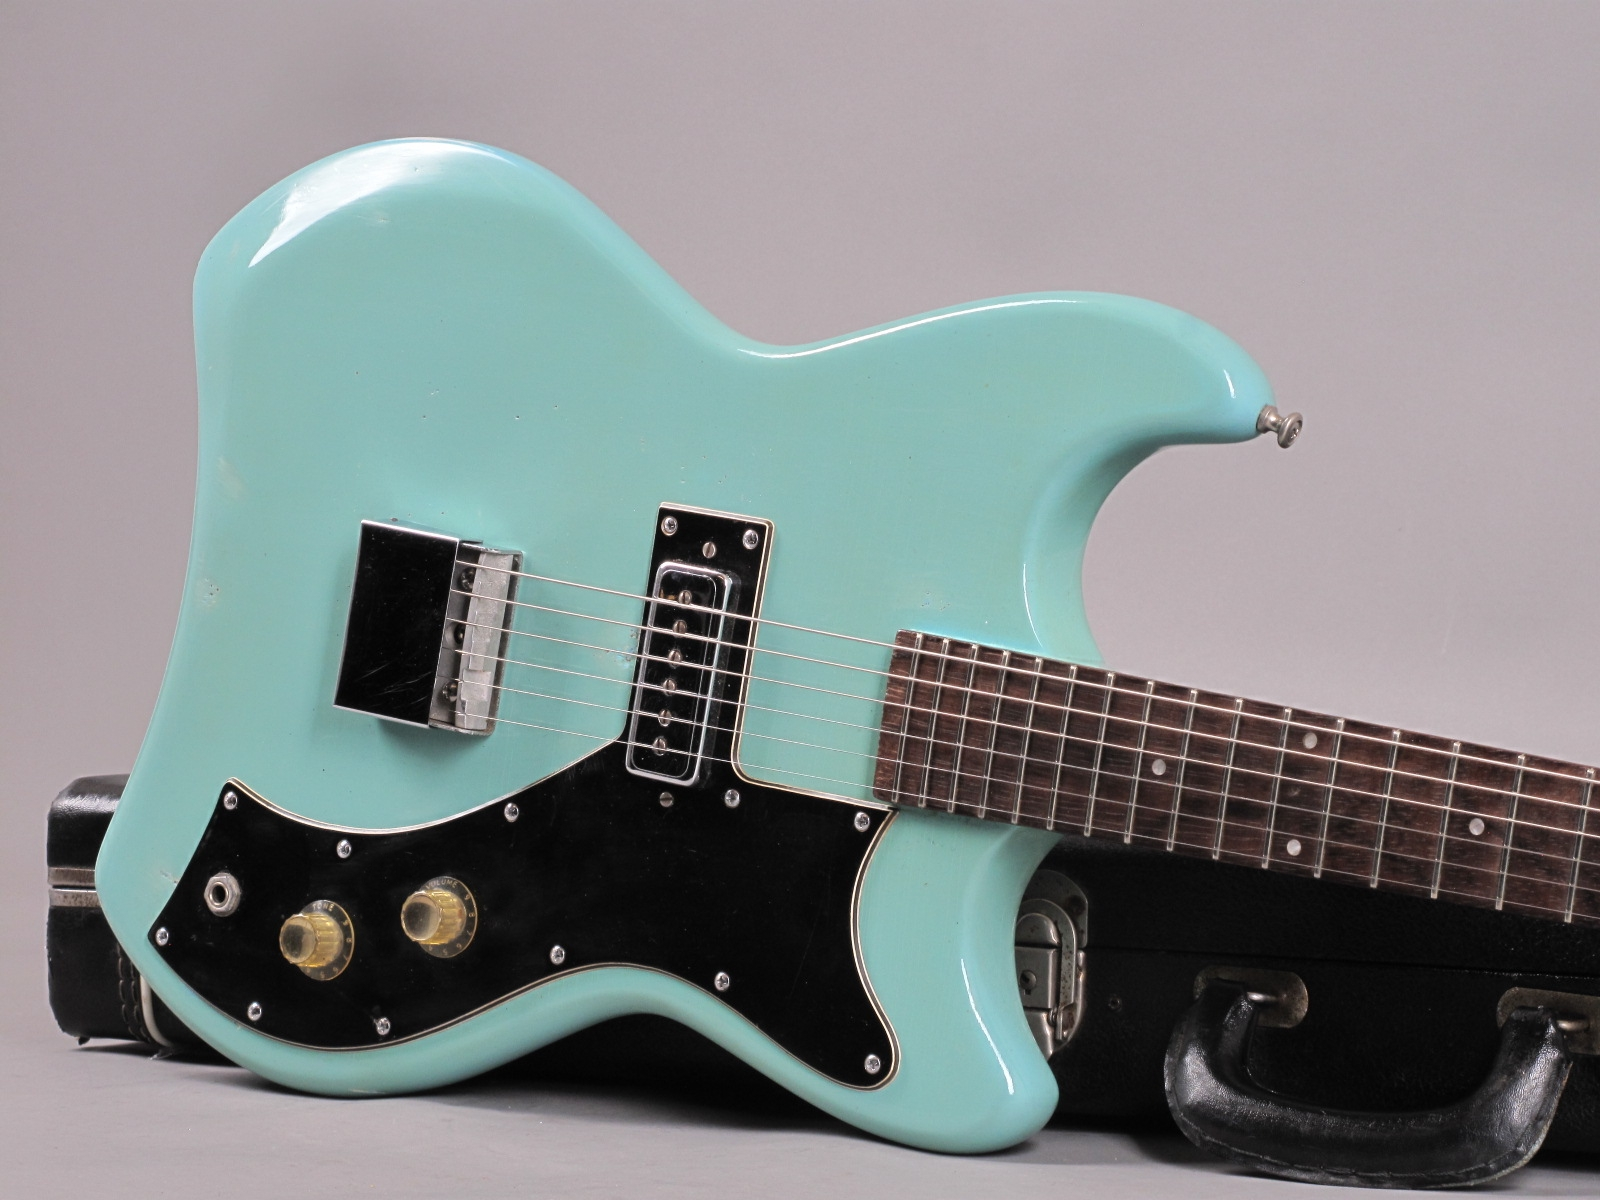 https://guitarpoint.de/app/uploads/products/1965-guild-s50-jetstar-teal-green/1965-Guild-Jetstar-S-50-34812_19.jpg